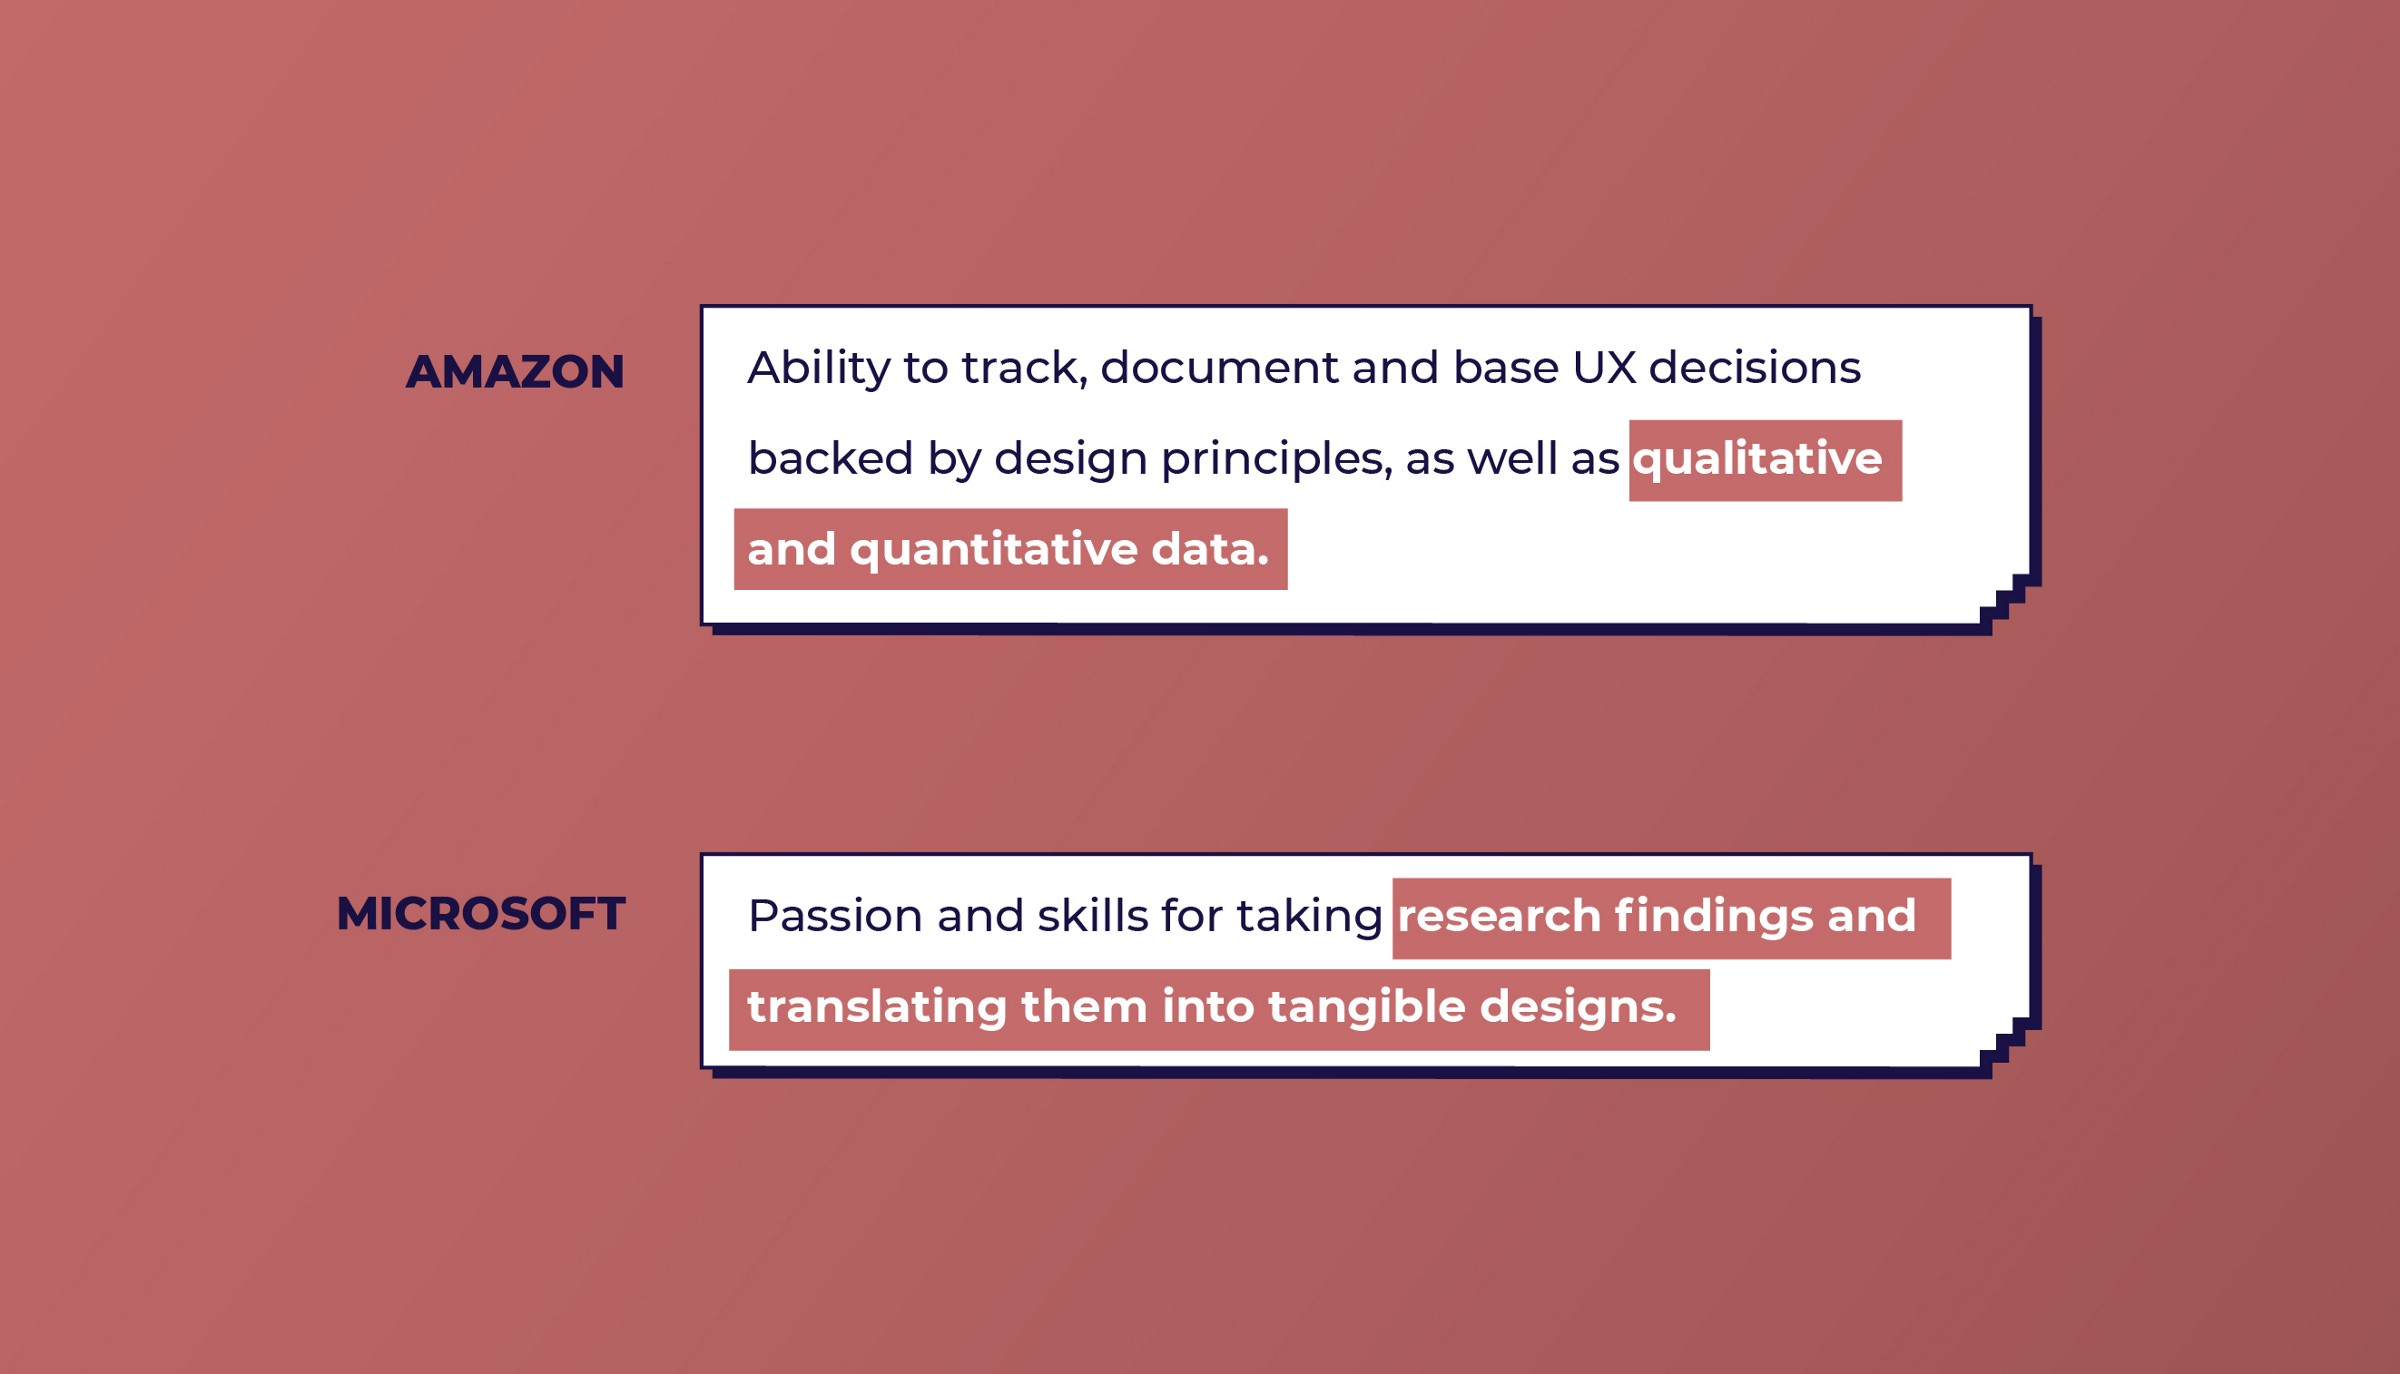 Amazon and Microsoft look for Data-driven design skills from UX designers